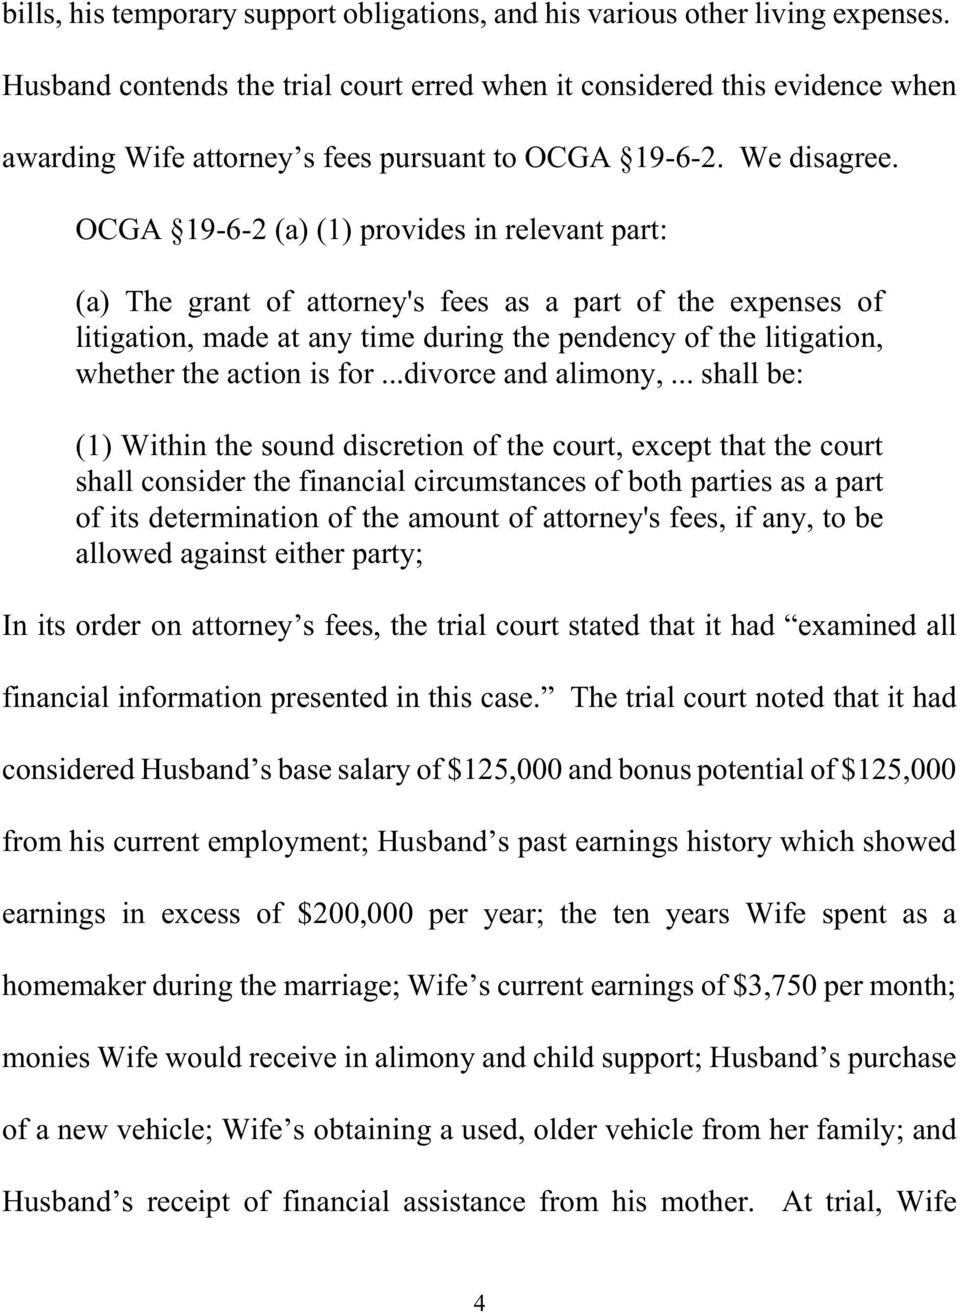 OCGA 19-6-2 (a) (1) provides in relevant part: (a) The grant of attorney's fees as a part of the expenses of litigation, made at any time during the pendency of the litigation, whether the action is